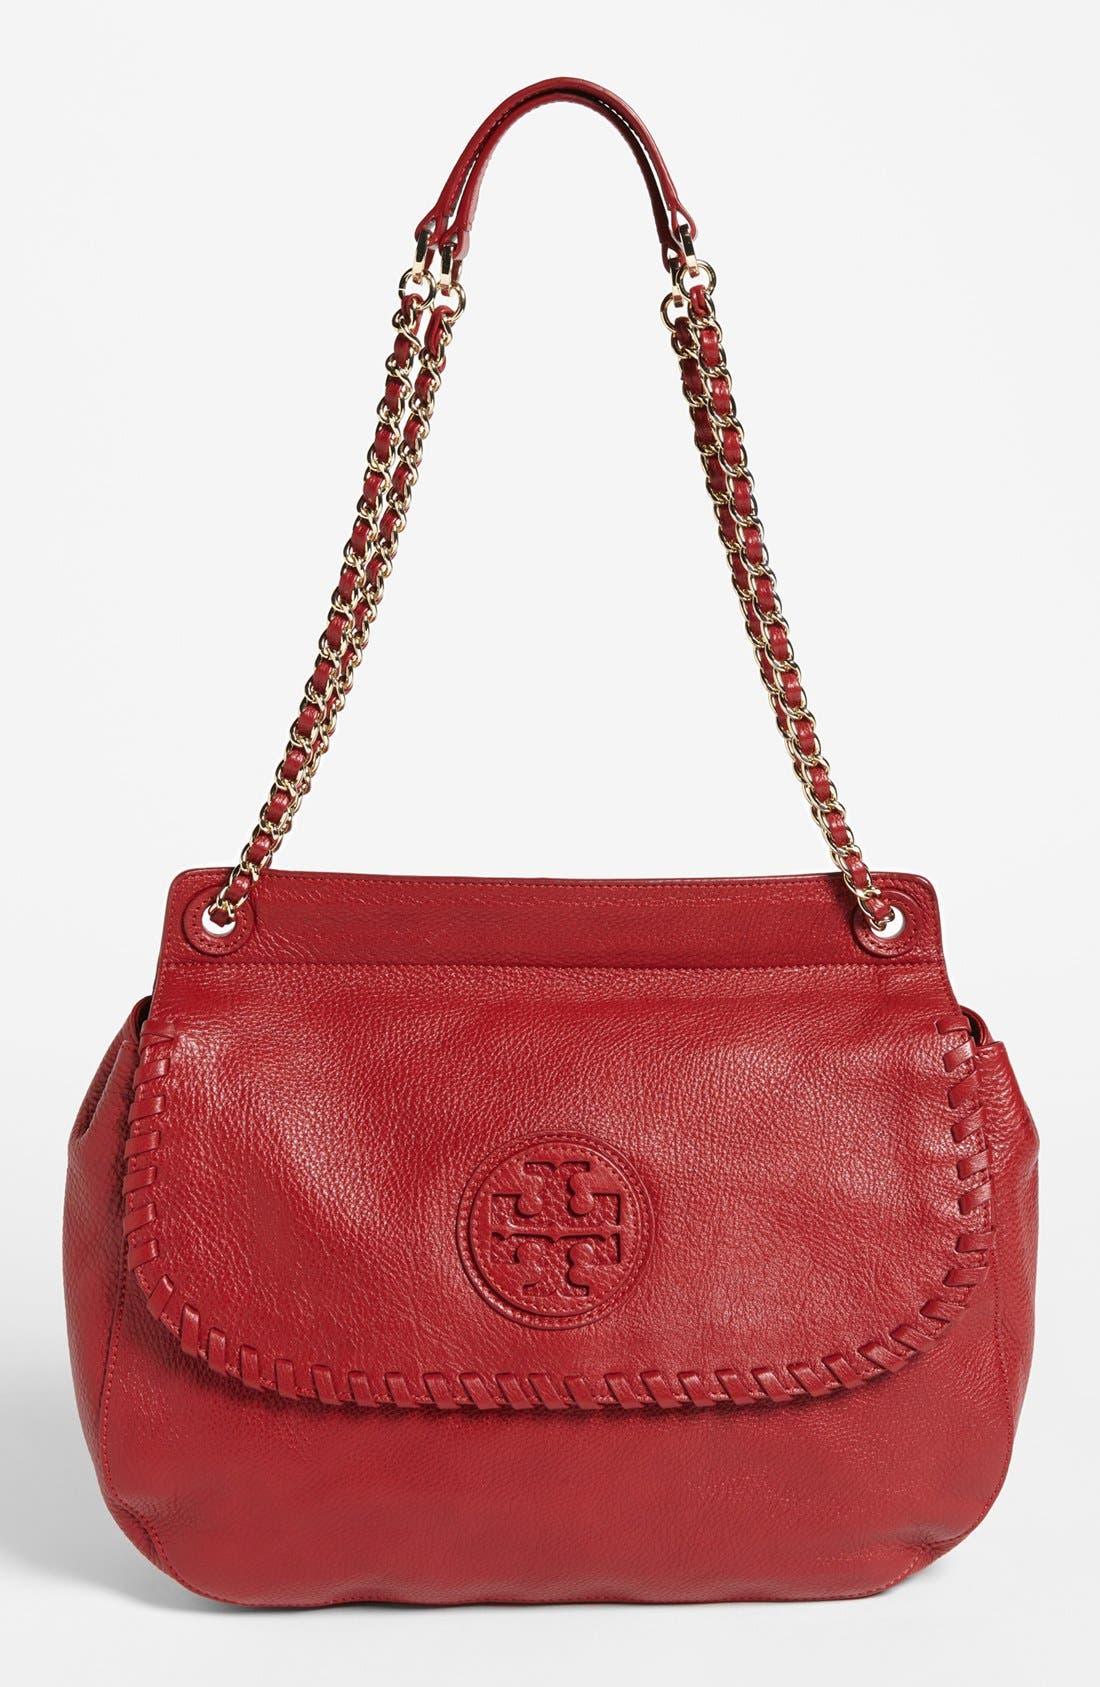 Alternate Image 1 Selected - Tory Burch 'Marion' Leather Saddlebag